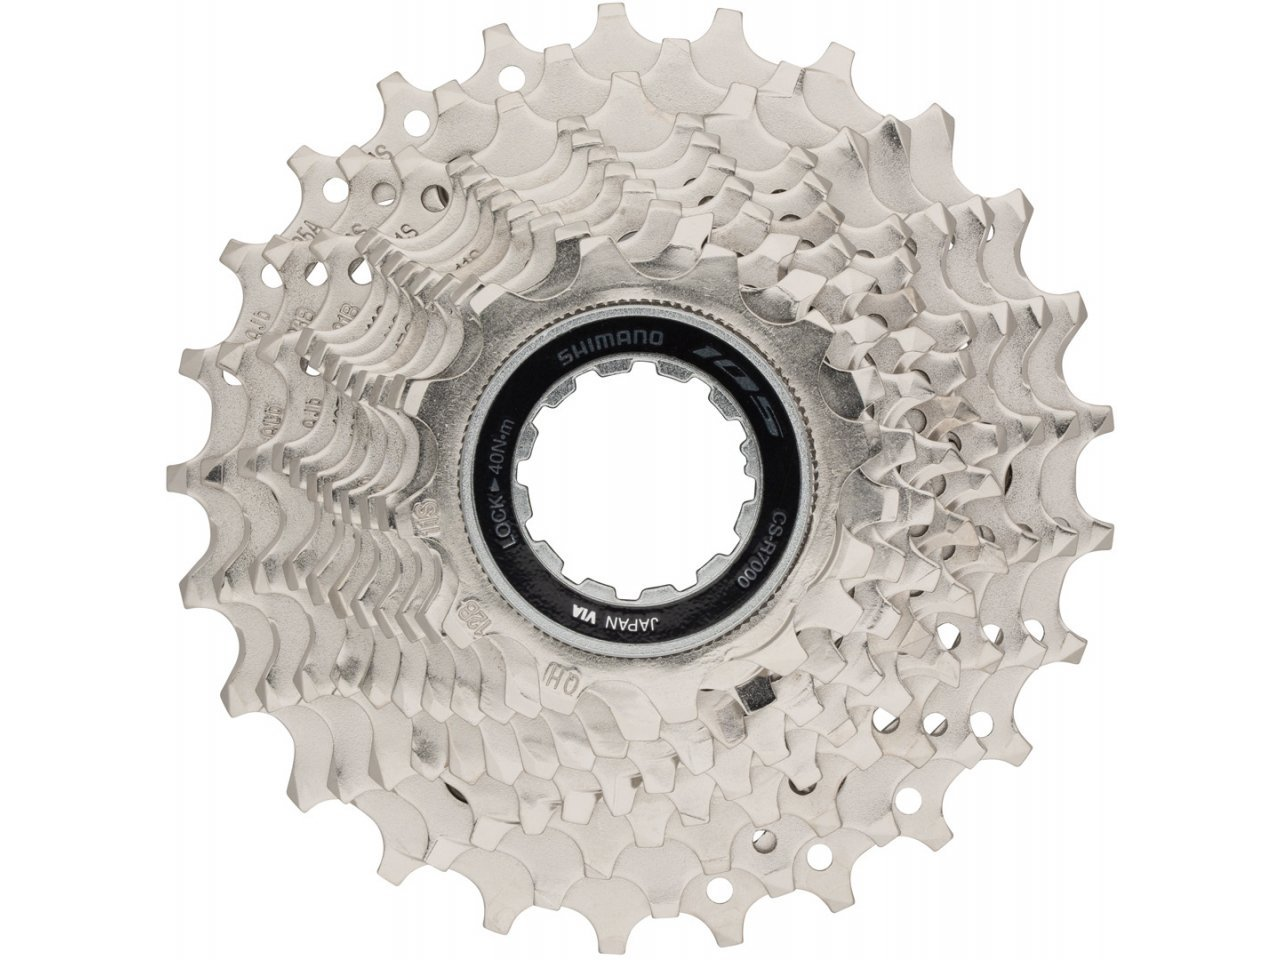 Shimano 105 CS-5800 Road Bike Cassette 12-25T 11 Speed New Retail Package